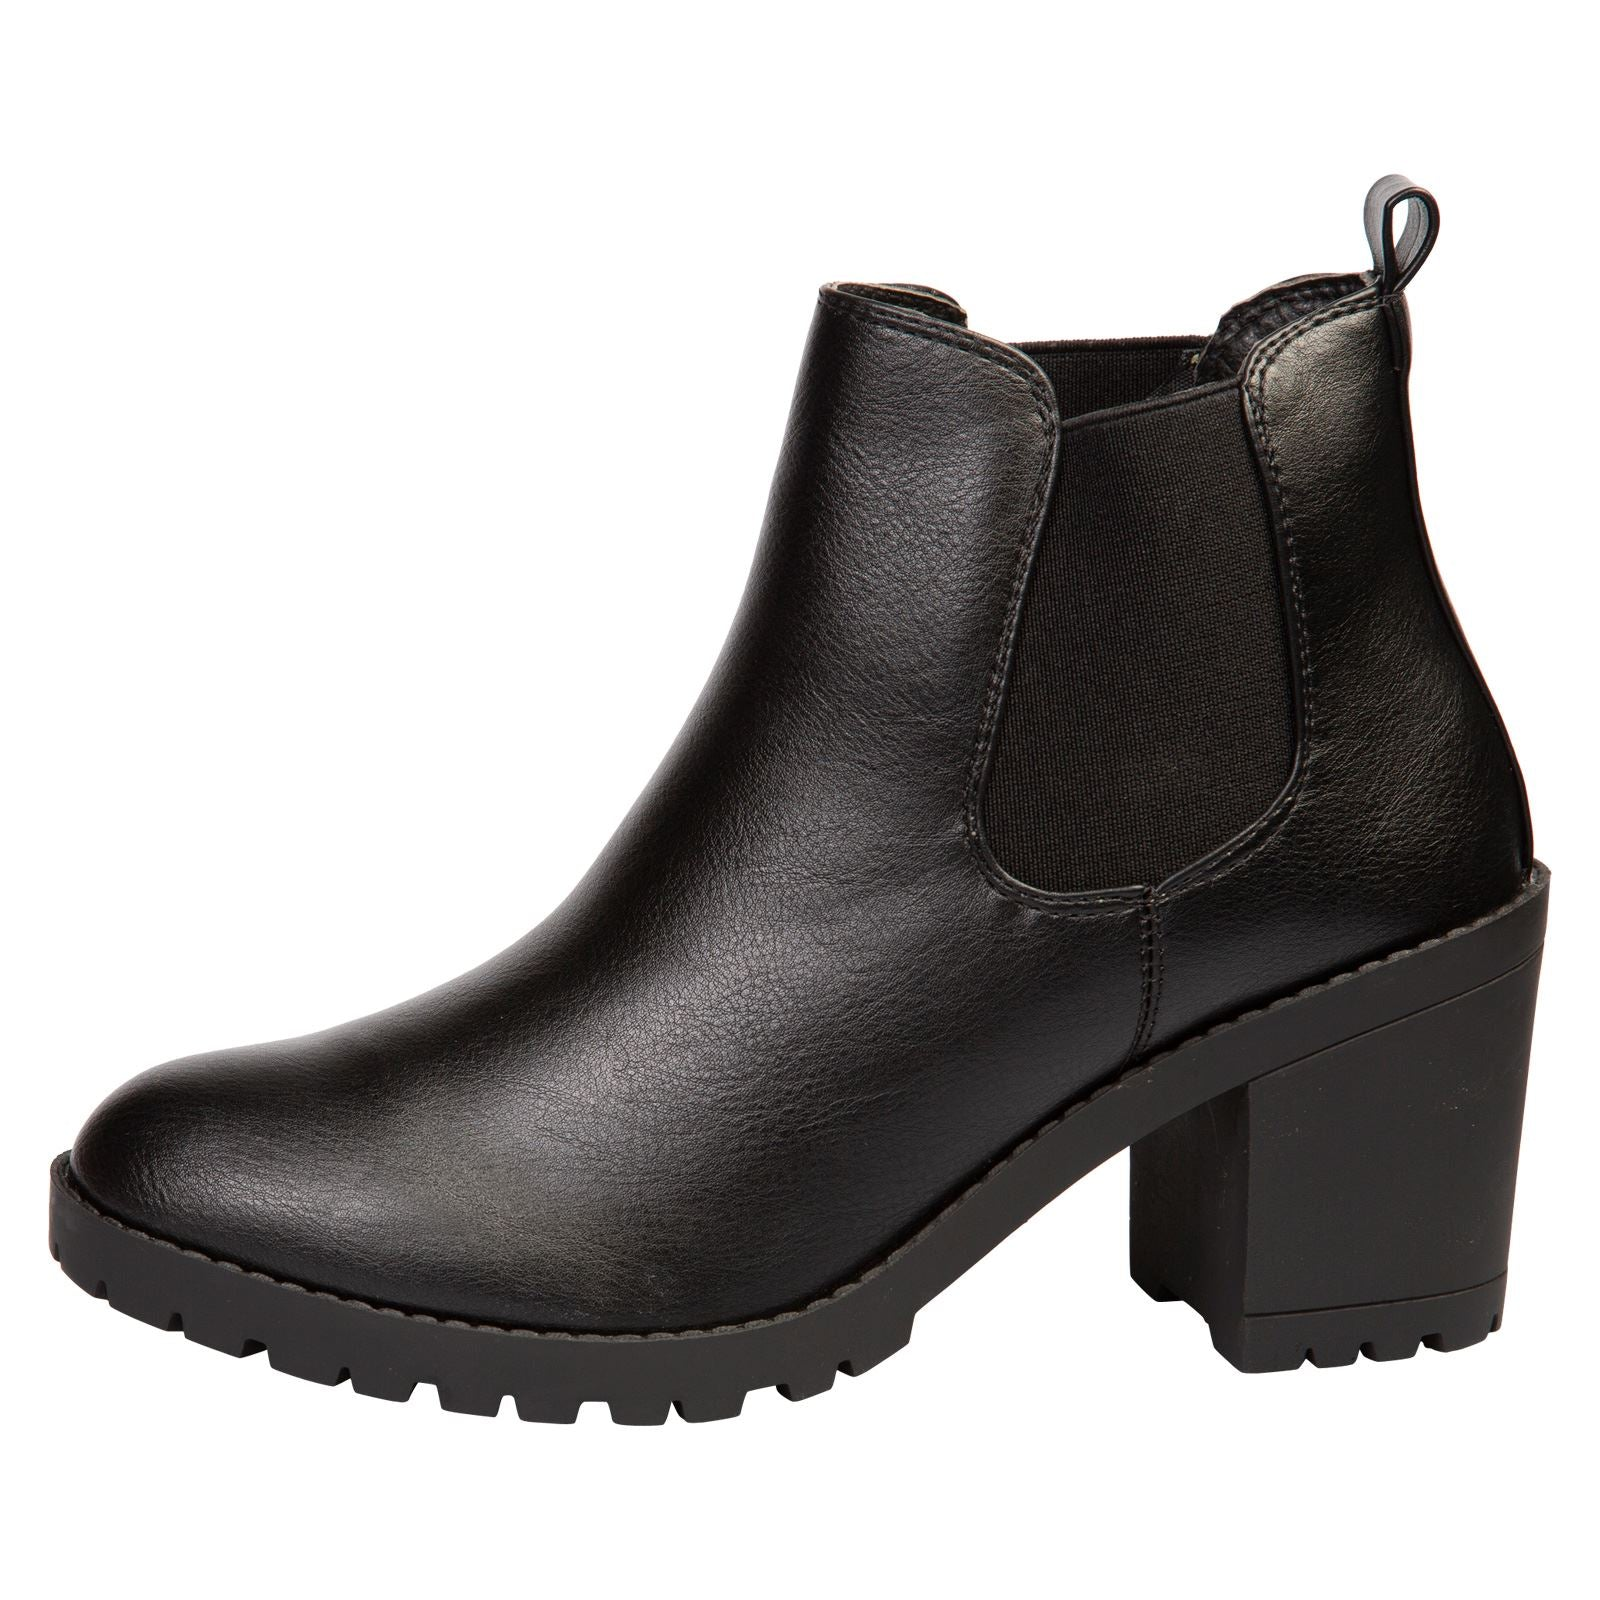 Amaya Block Heel Chelsea Boots in Black Faux Leather - Feet First Fashion